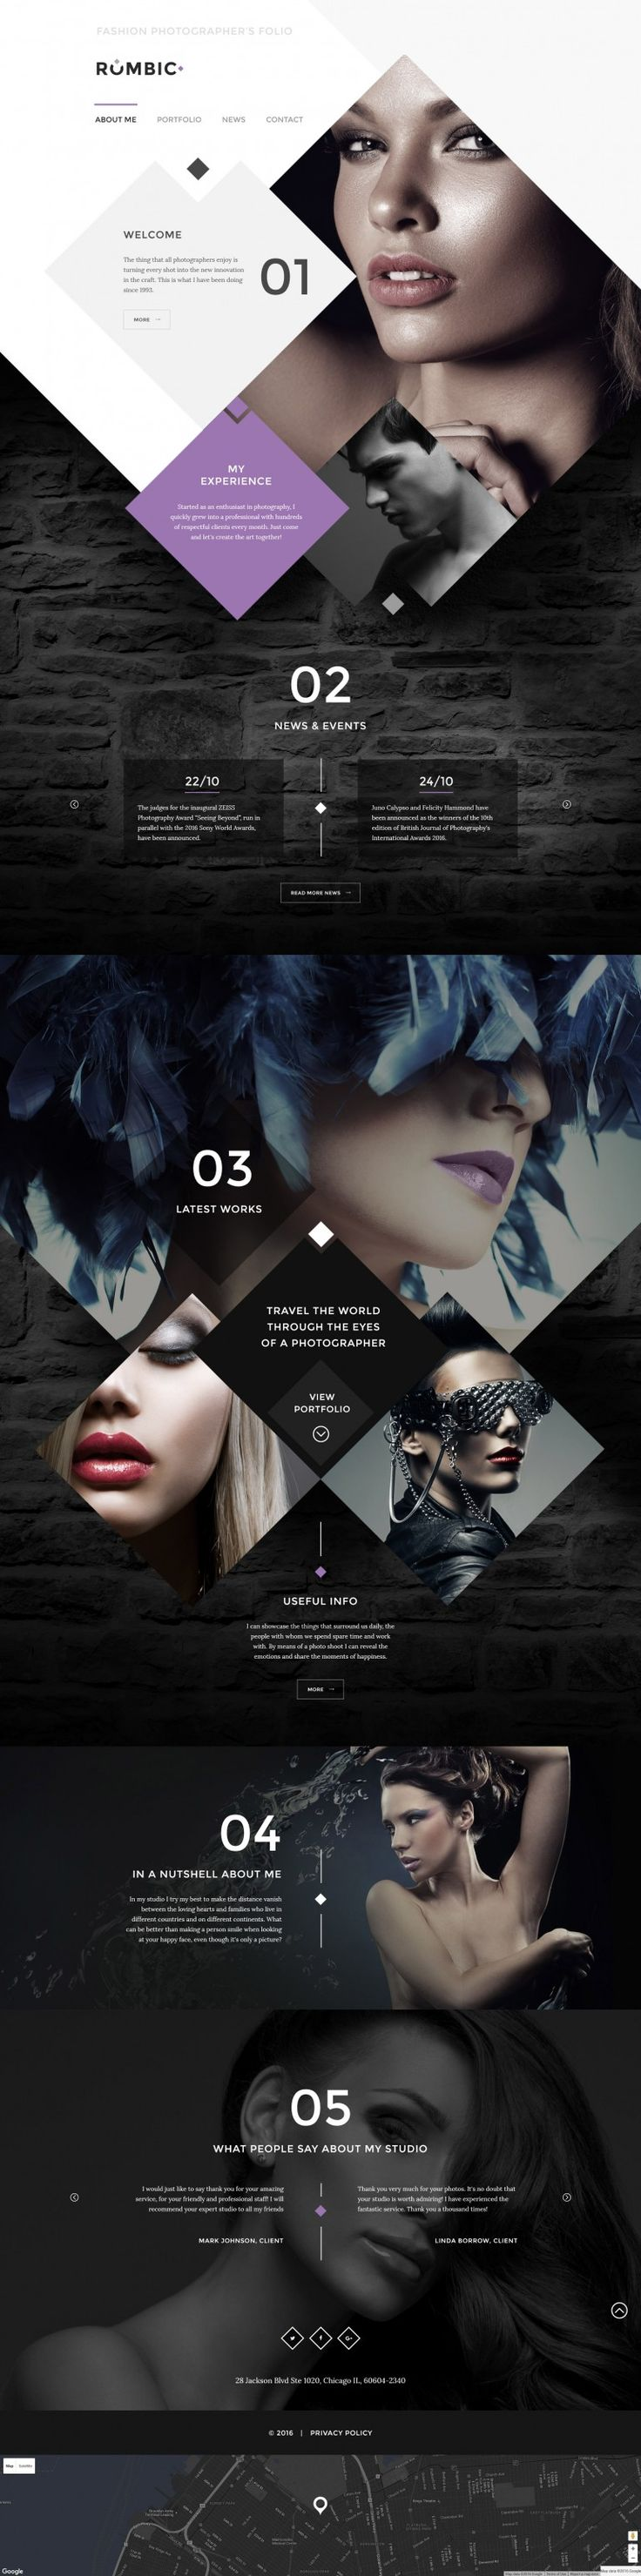 Rombic Website Template on Inspirationde